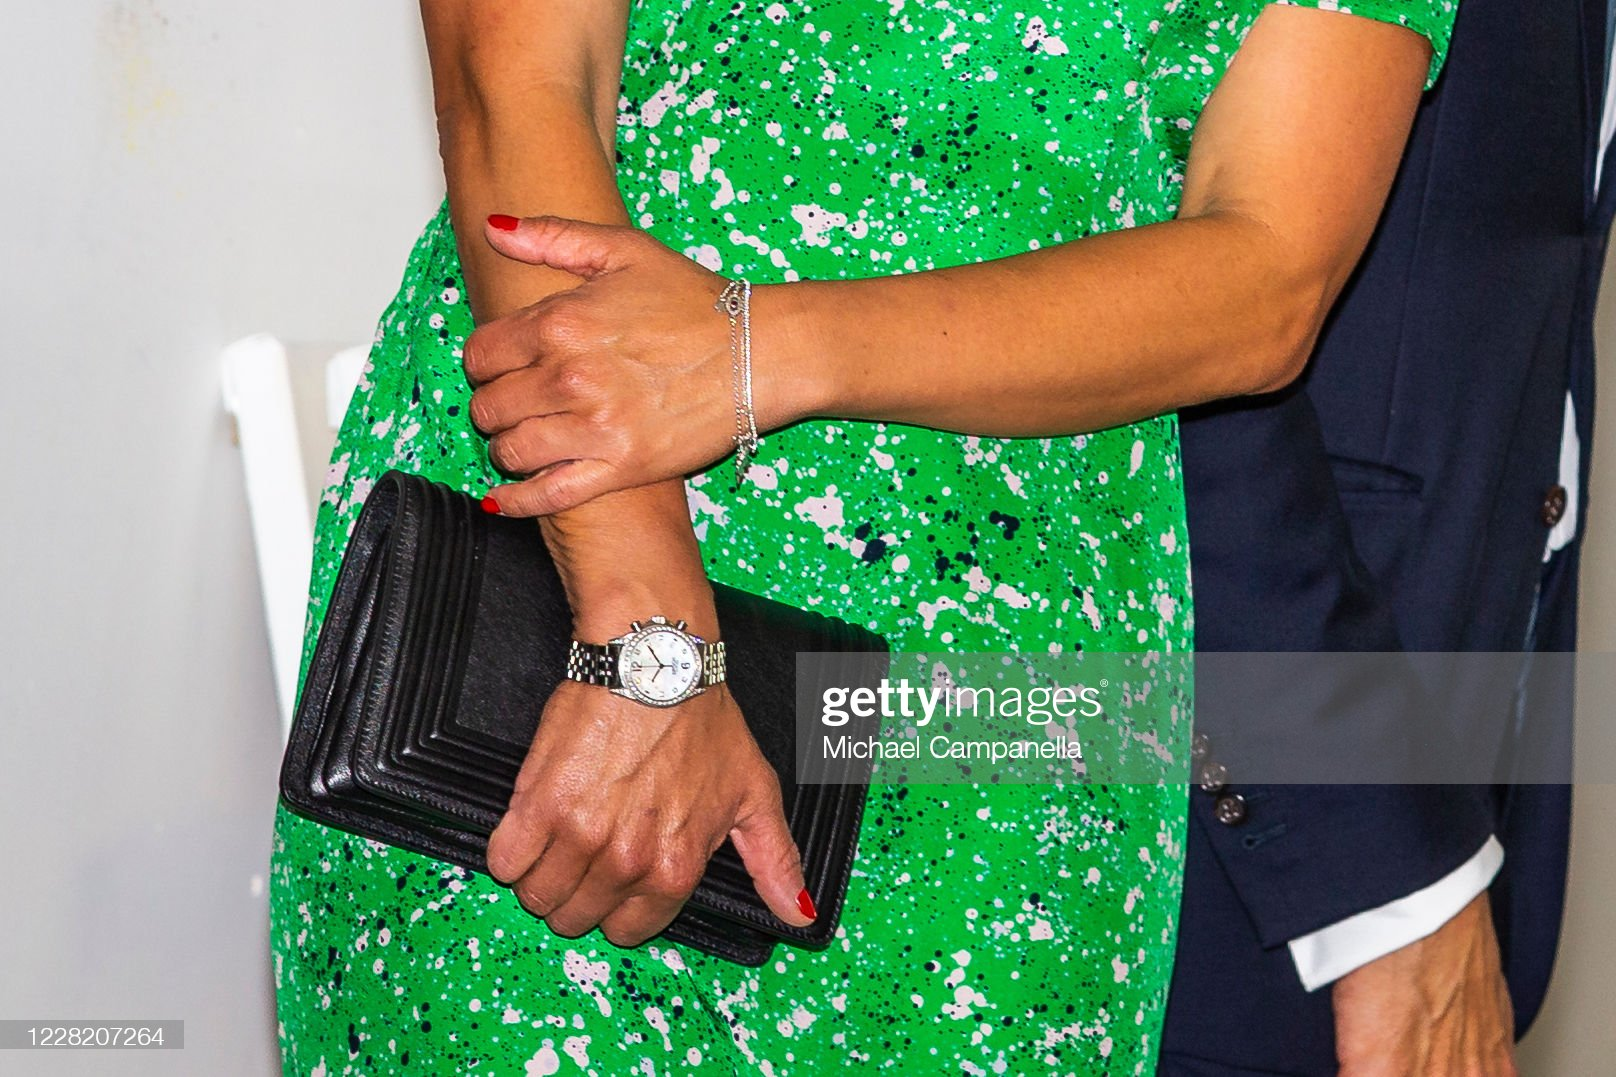 watch-and-handbag-worn-by-crown-princess-victoria-of-sweden-while-picture-id1228207264